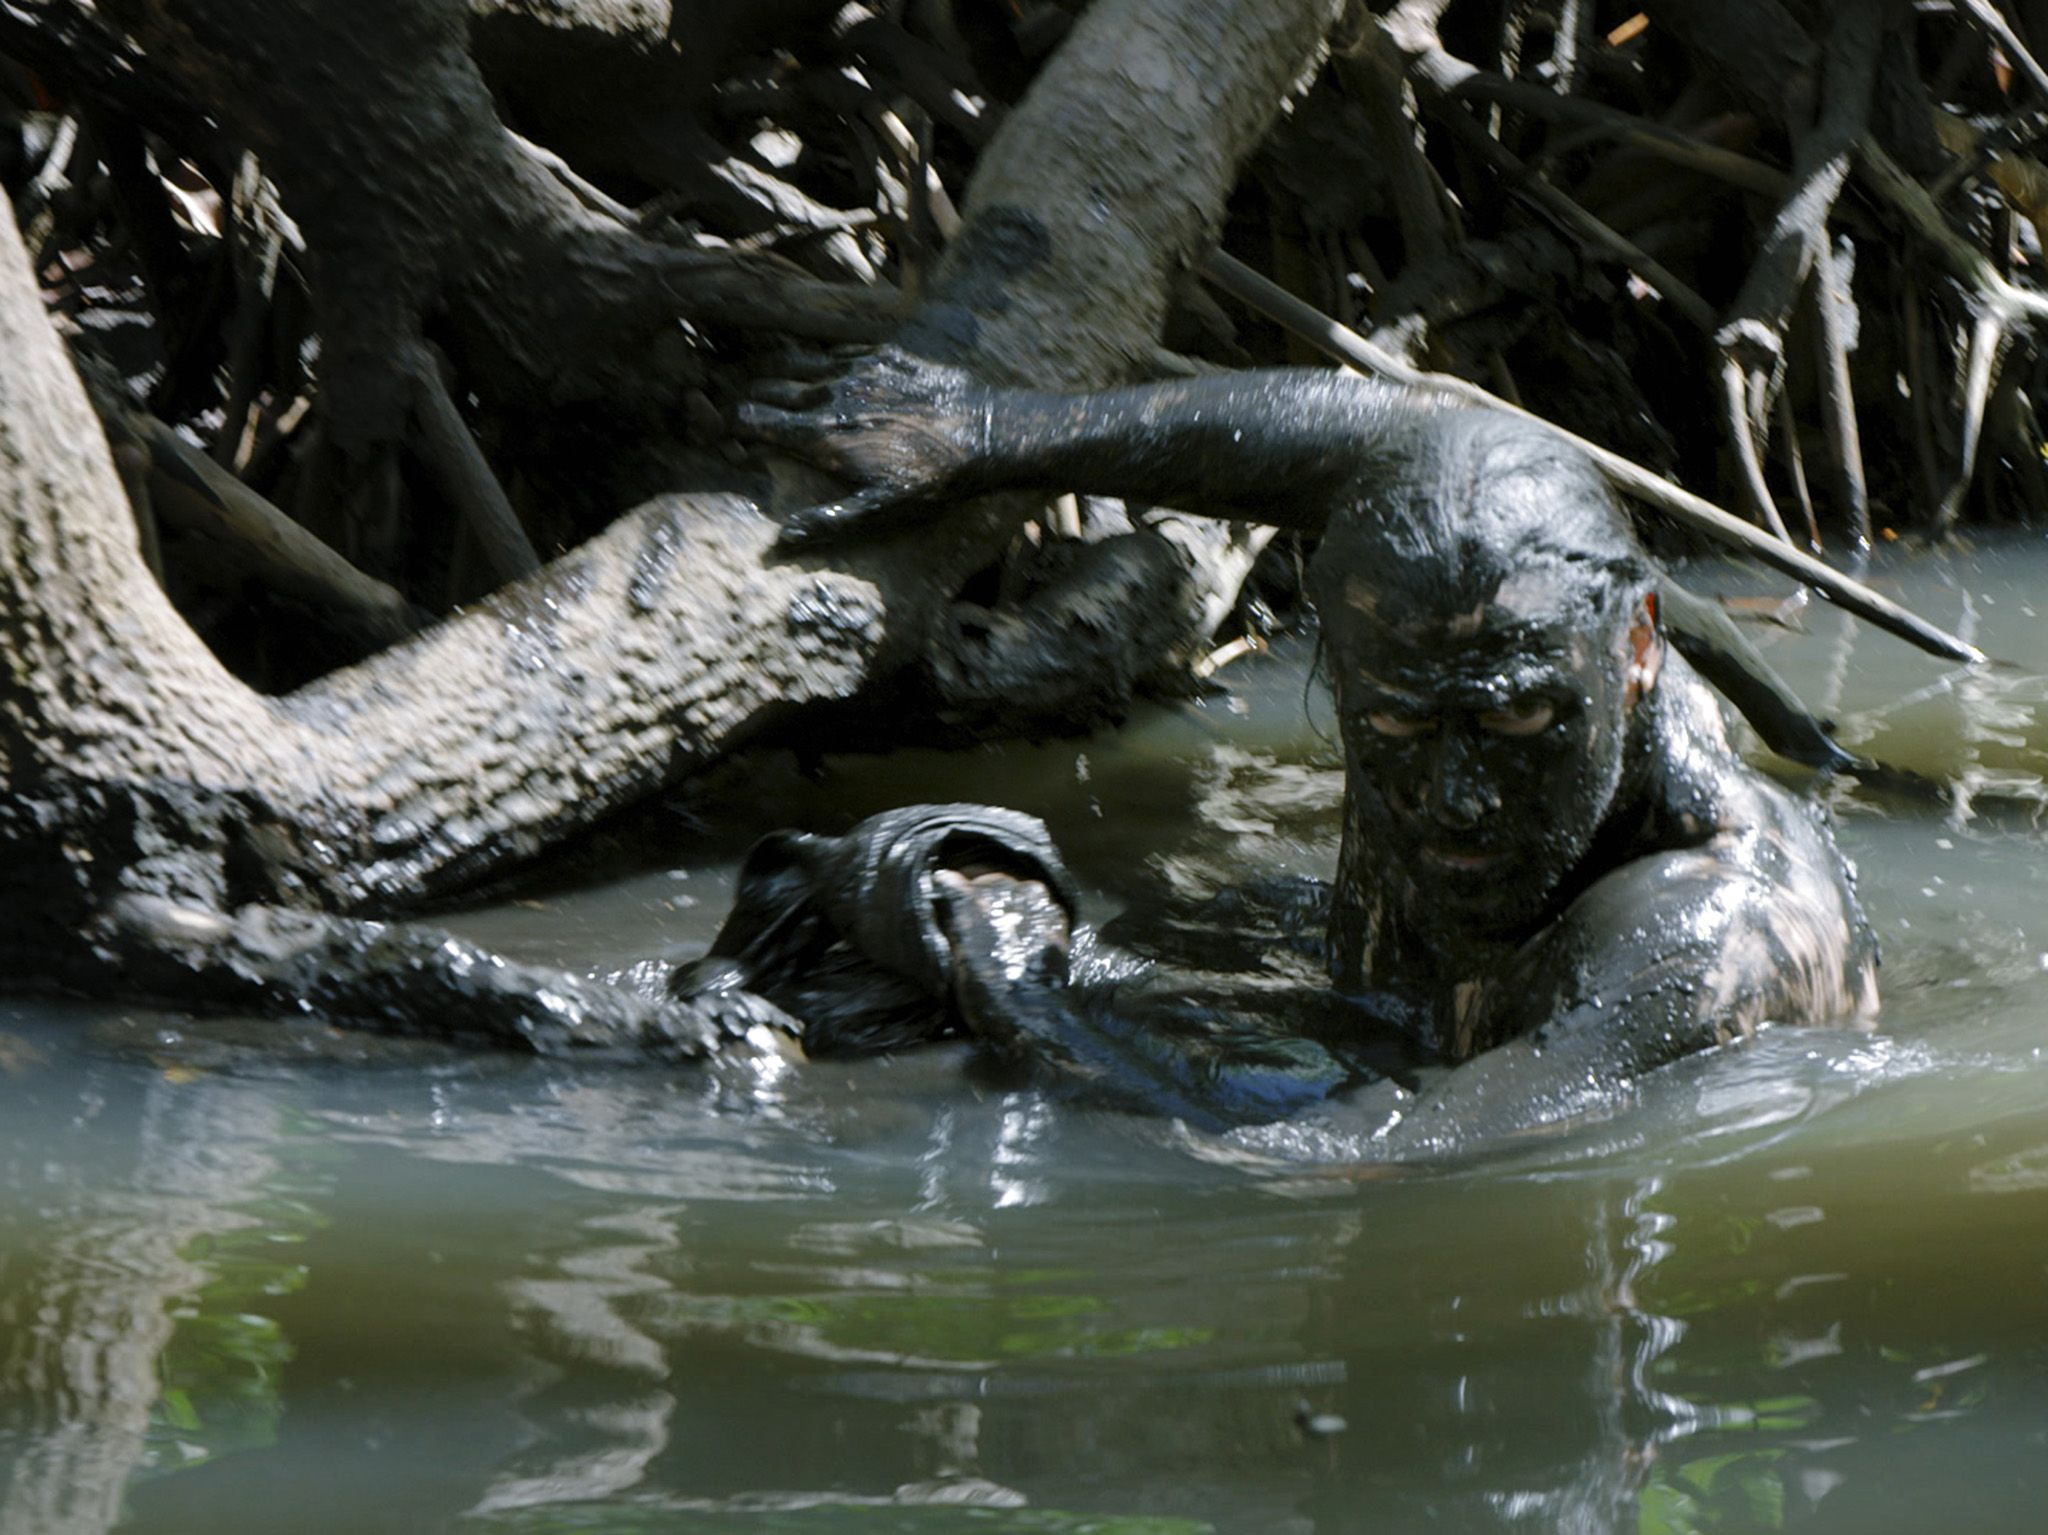 Hazen Audel, covered in mud for camouflage, enters the water of a mangrove swamp. This image is... [Photo of the day - November 2019]